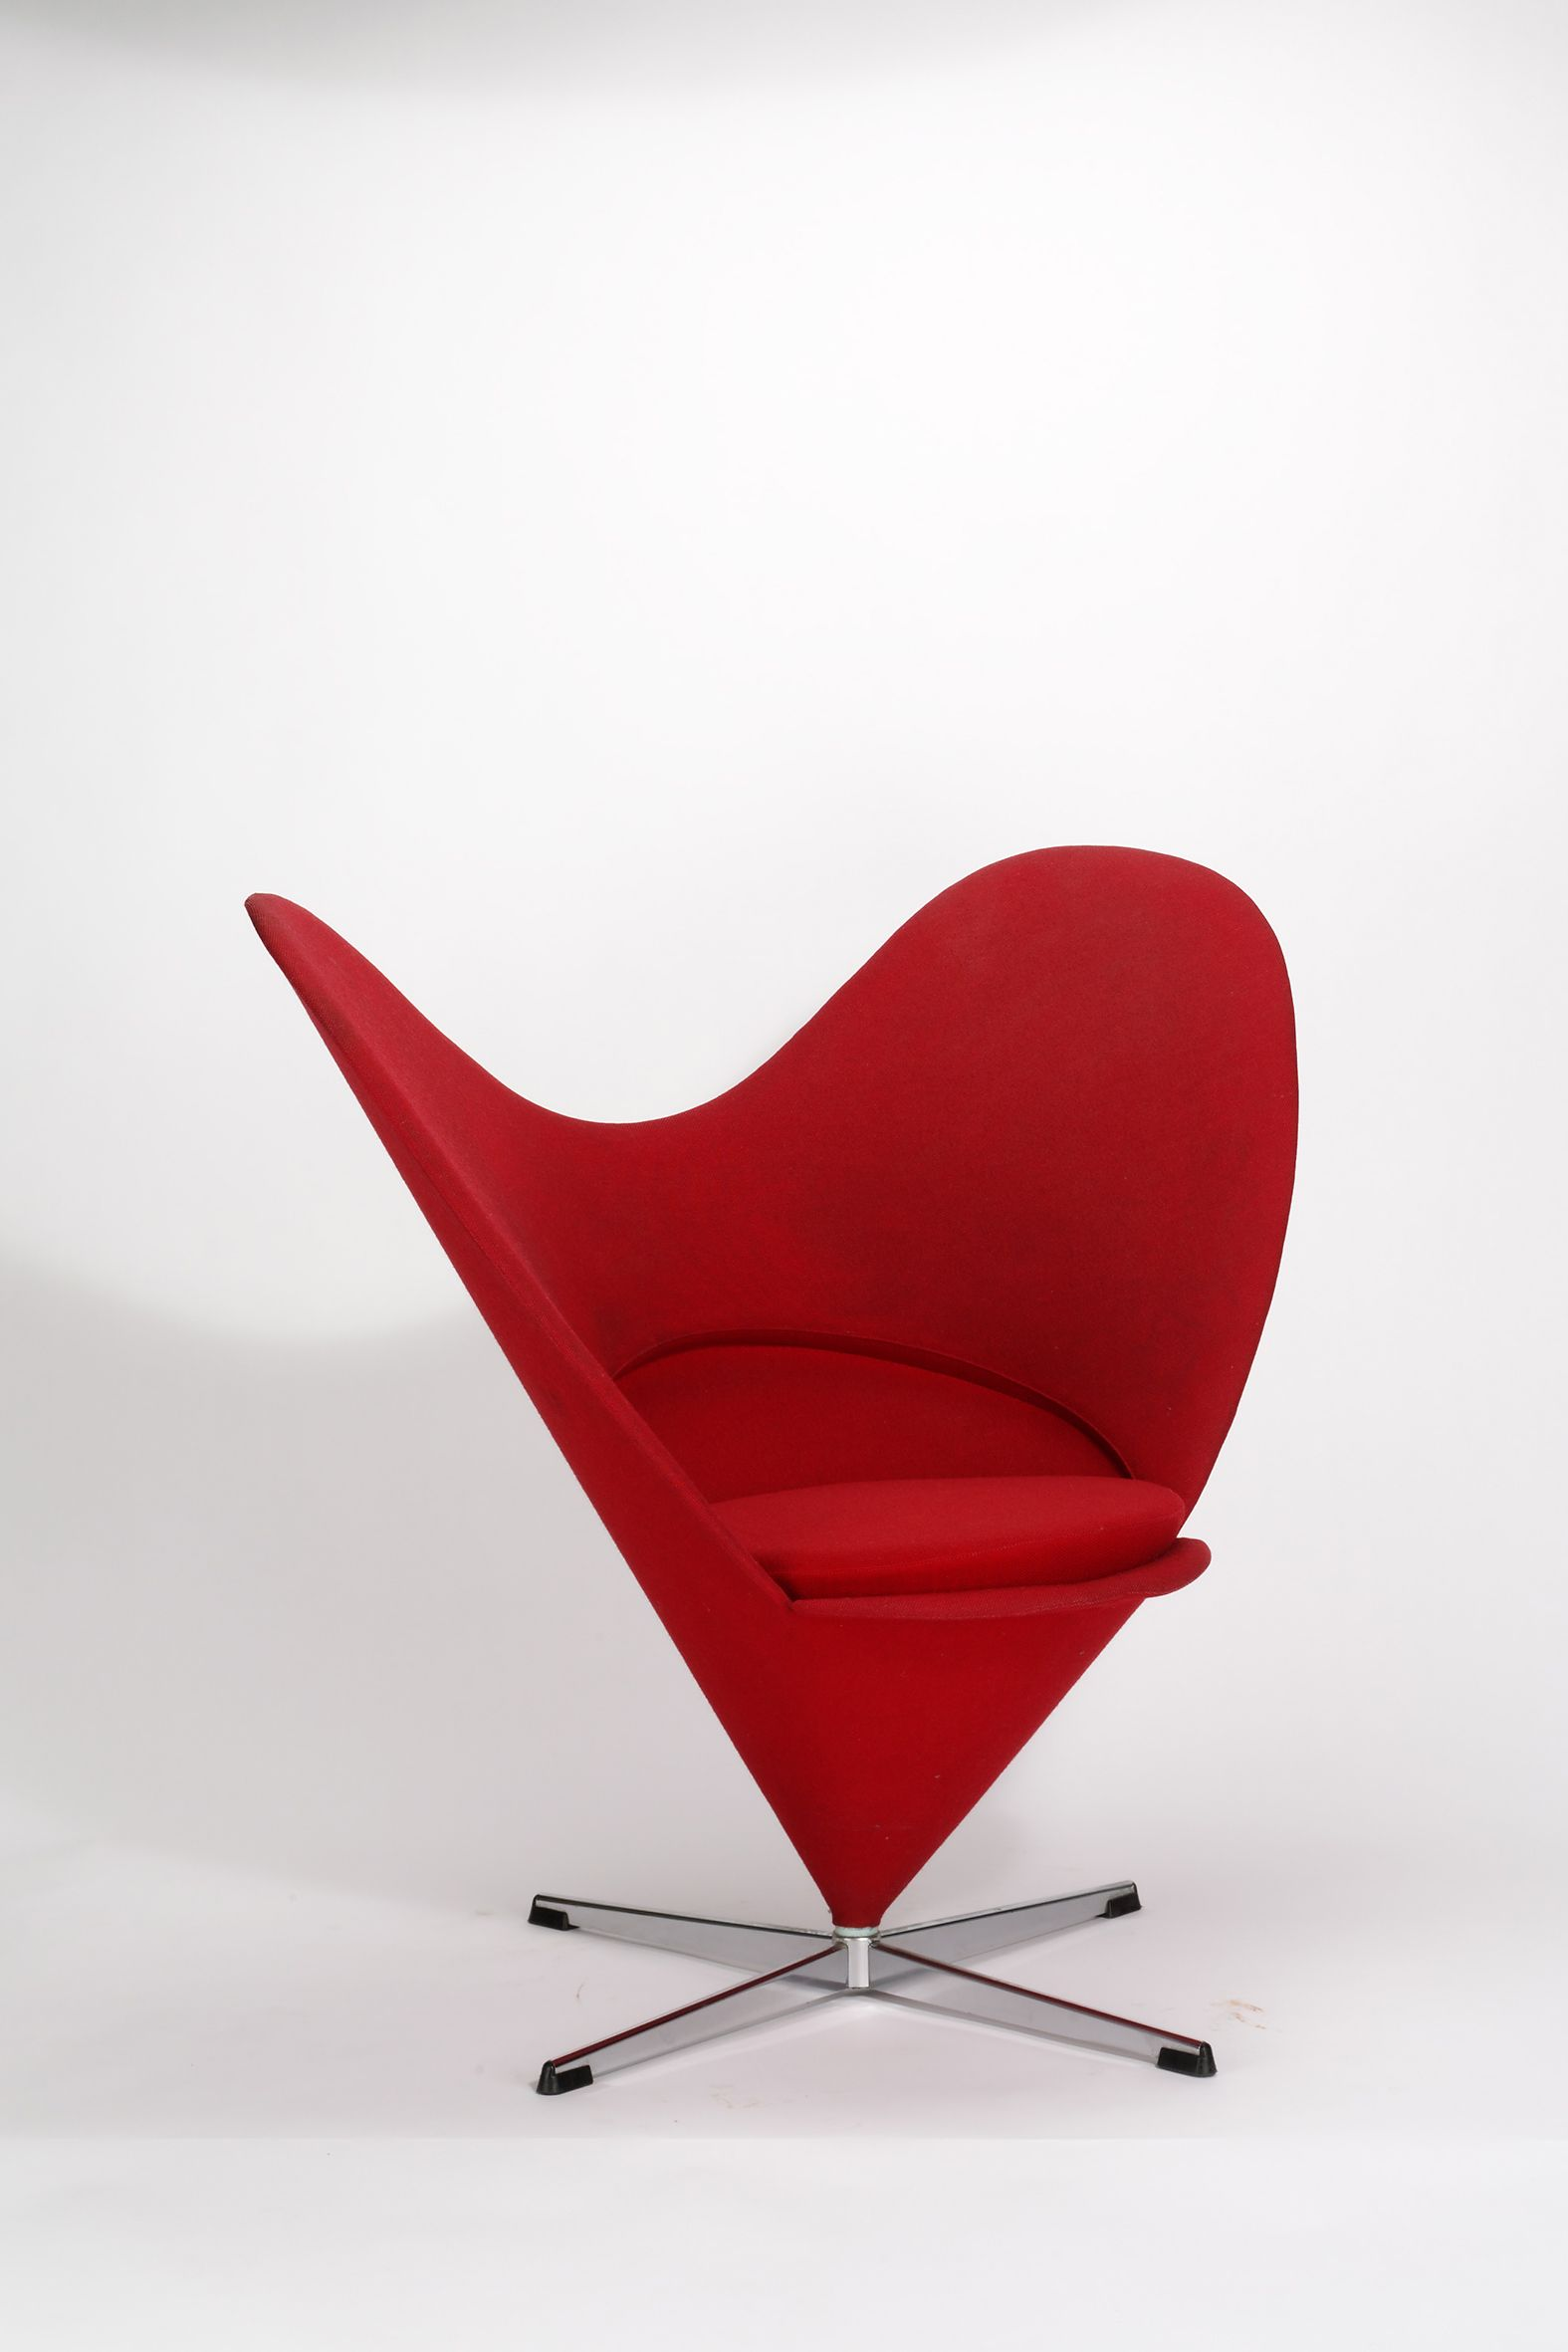 vernon panton chair used barber for sale verner heart cone 1959 chairs